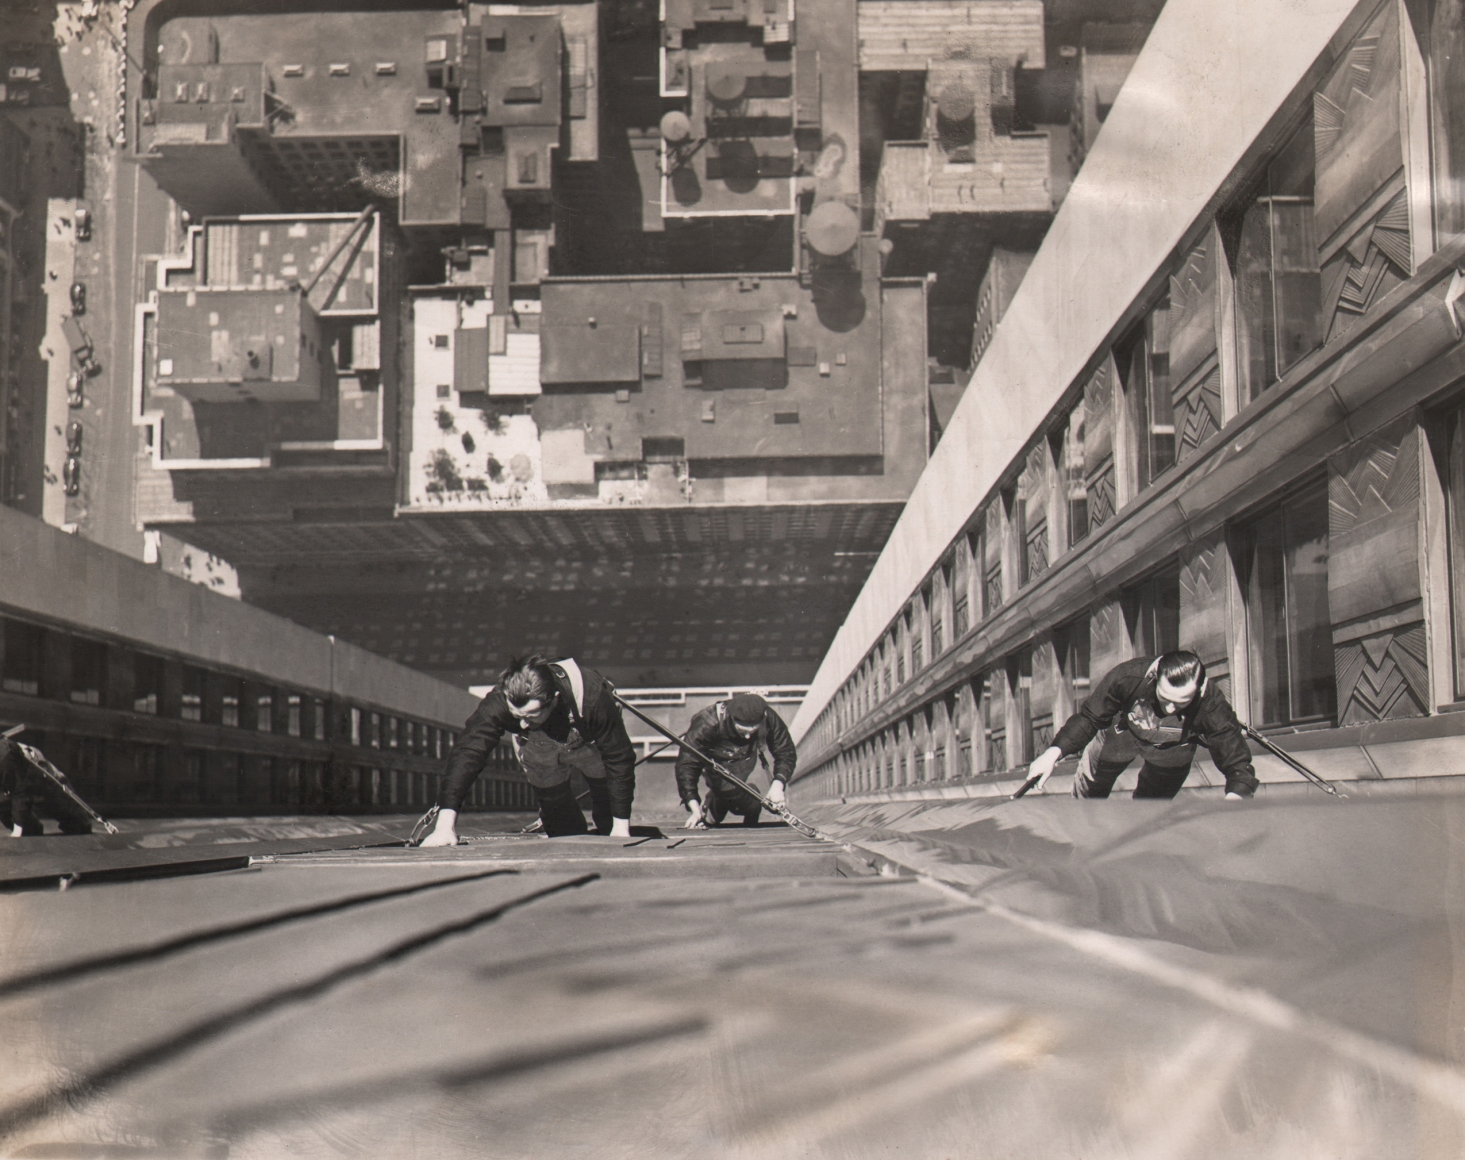 16. Wide World Photos, Human Flies as Window Cleaners, 1938. Downward-looking view of three men suspended against the building facade with the city visible far below and behind them.